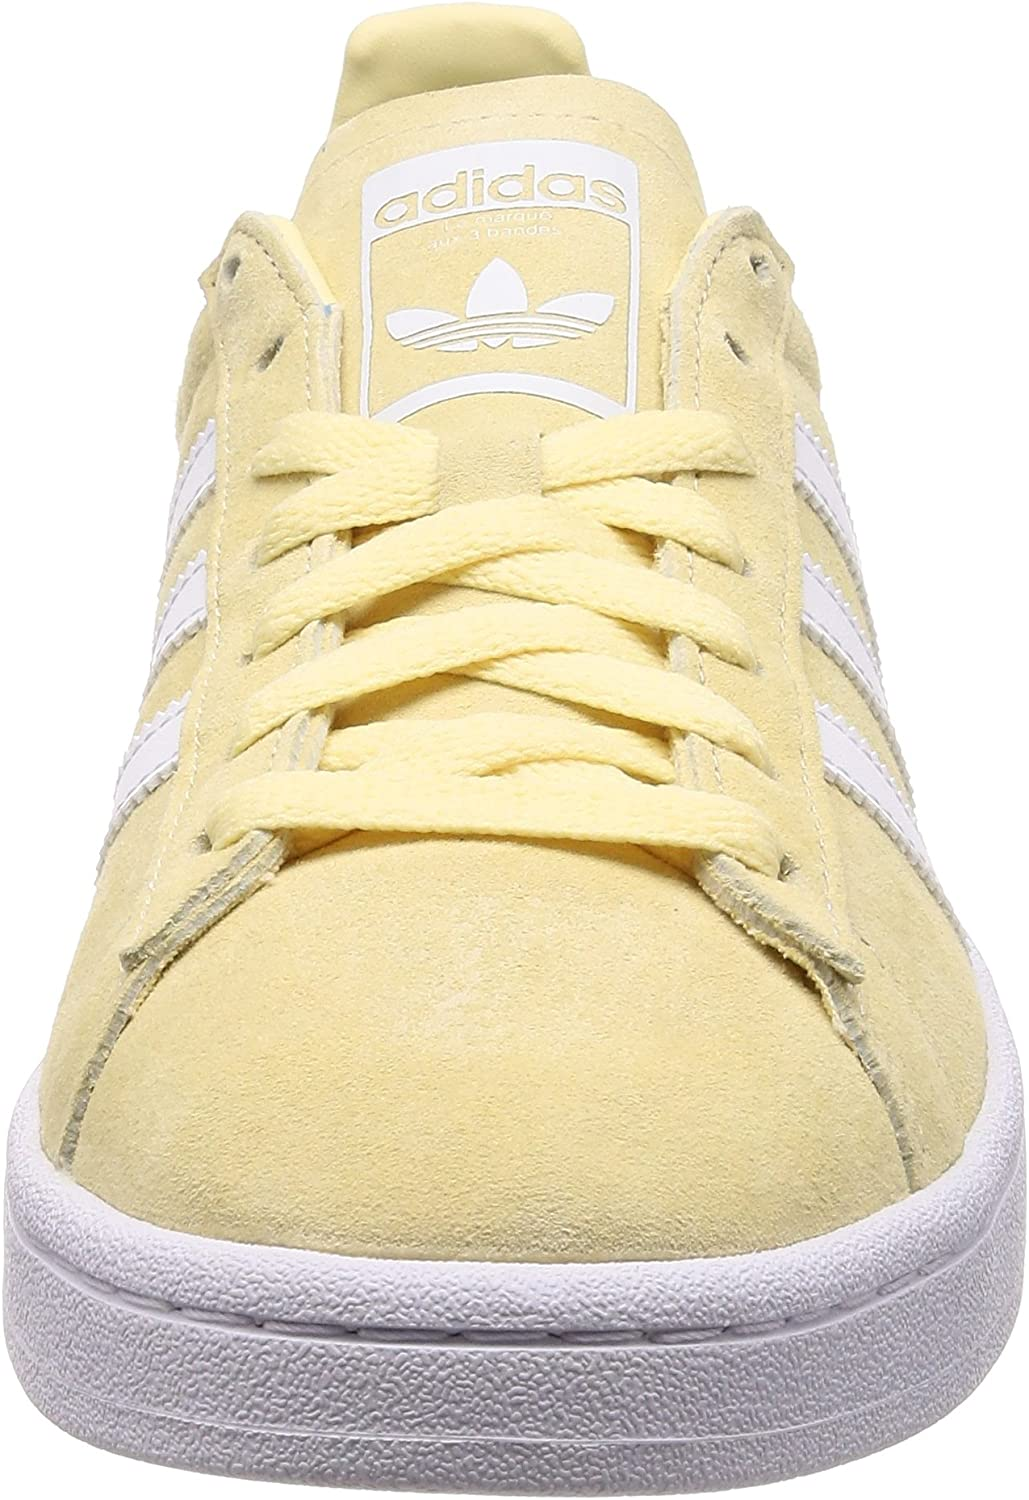 adidas Originals Campus Mens Sneakers